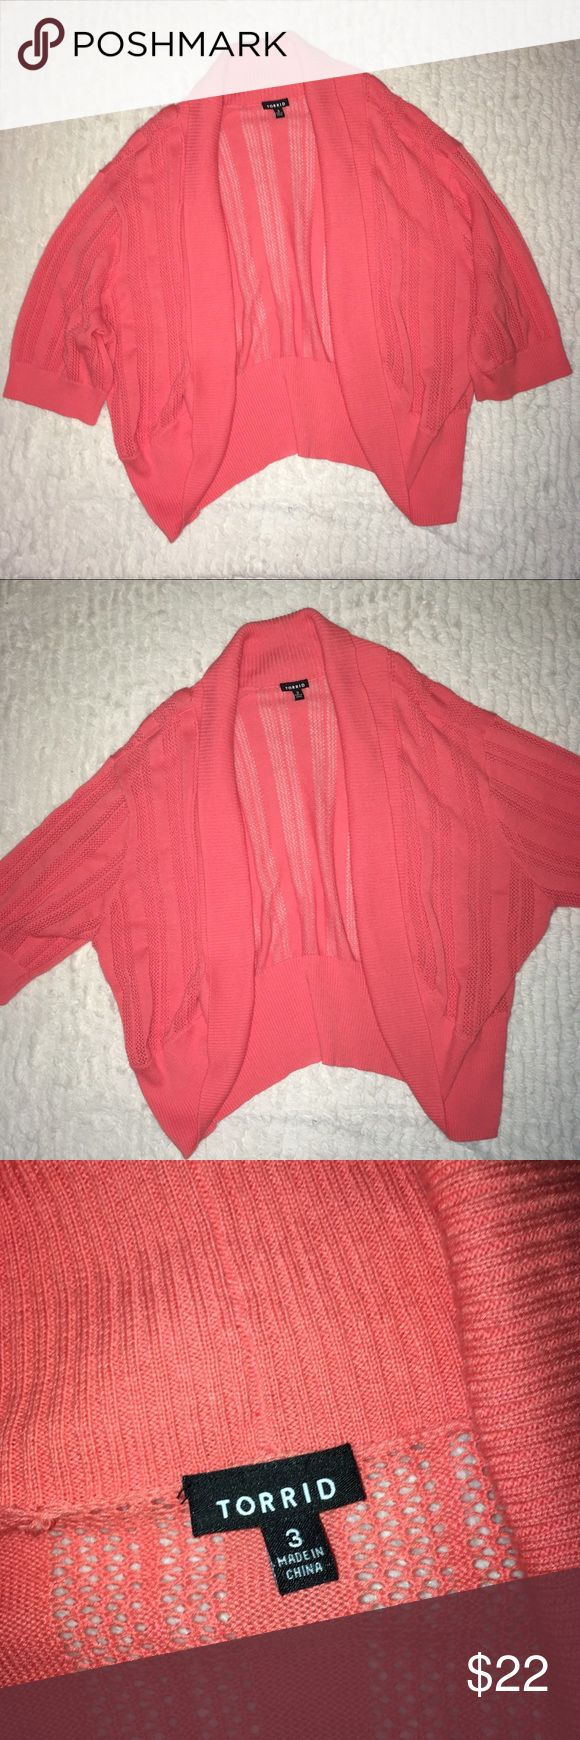 Torrid coral open knit shrug sweater size 3 Torrid coral open knit shrug sweater size 3. Length measures approximately 24 inches. So cute over tops and dresses. torrid Sweaters Shrugs & Ponchos